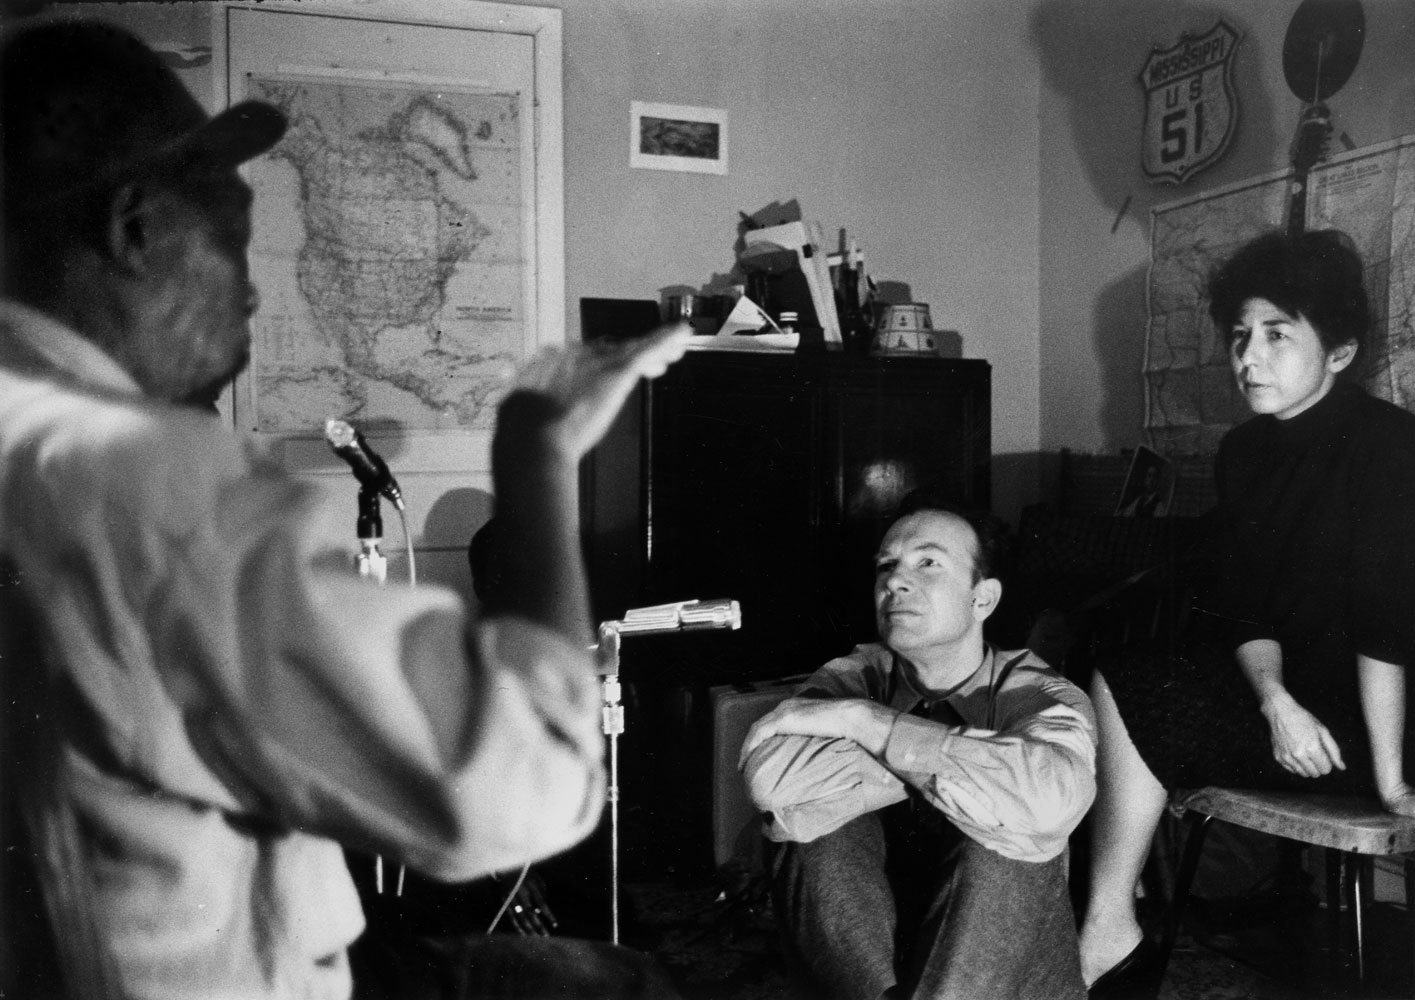 Pete Seeger (center) and his Toshi sit during a recording session with John Hurt, c. 1960s.